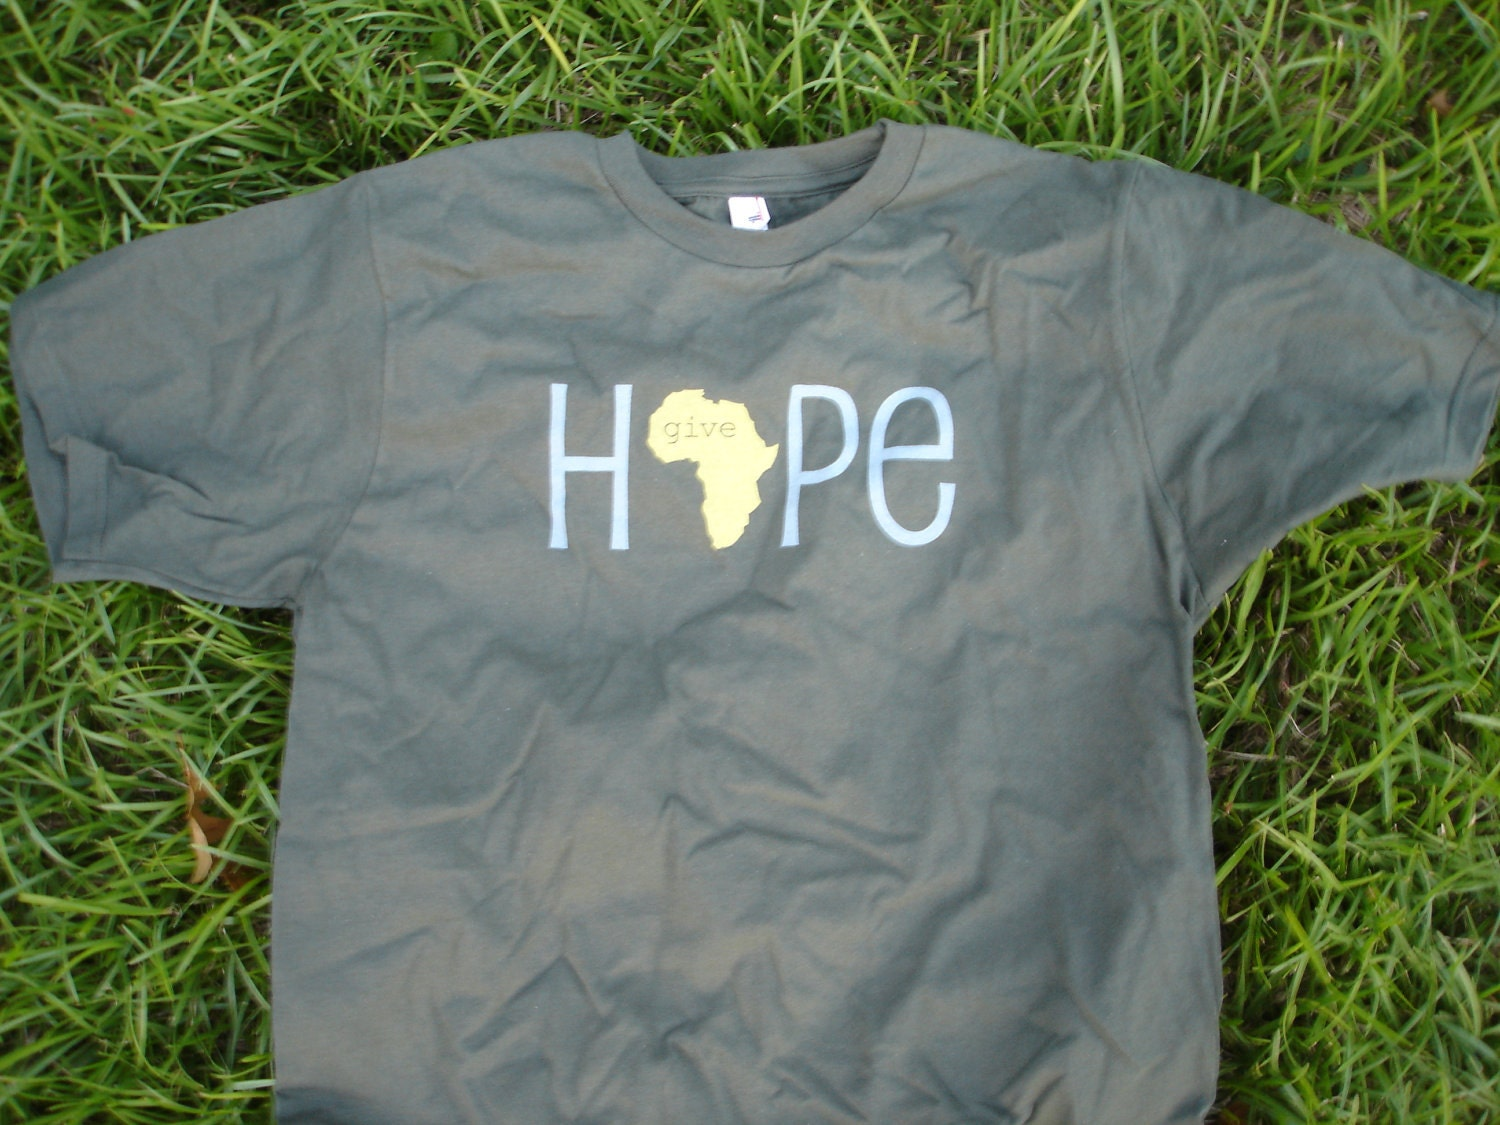 Give Hope Africa Adoption T-shirt (Unisex)